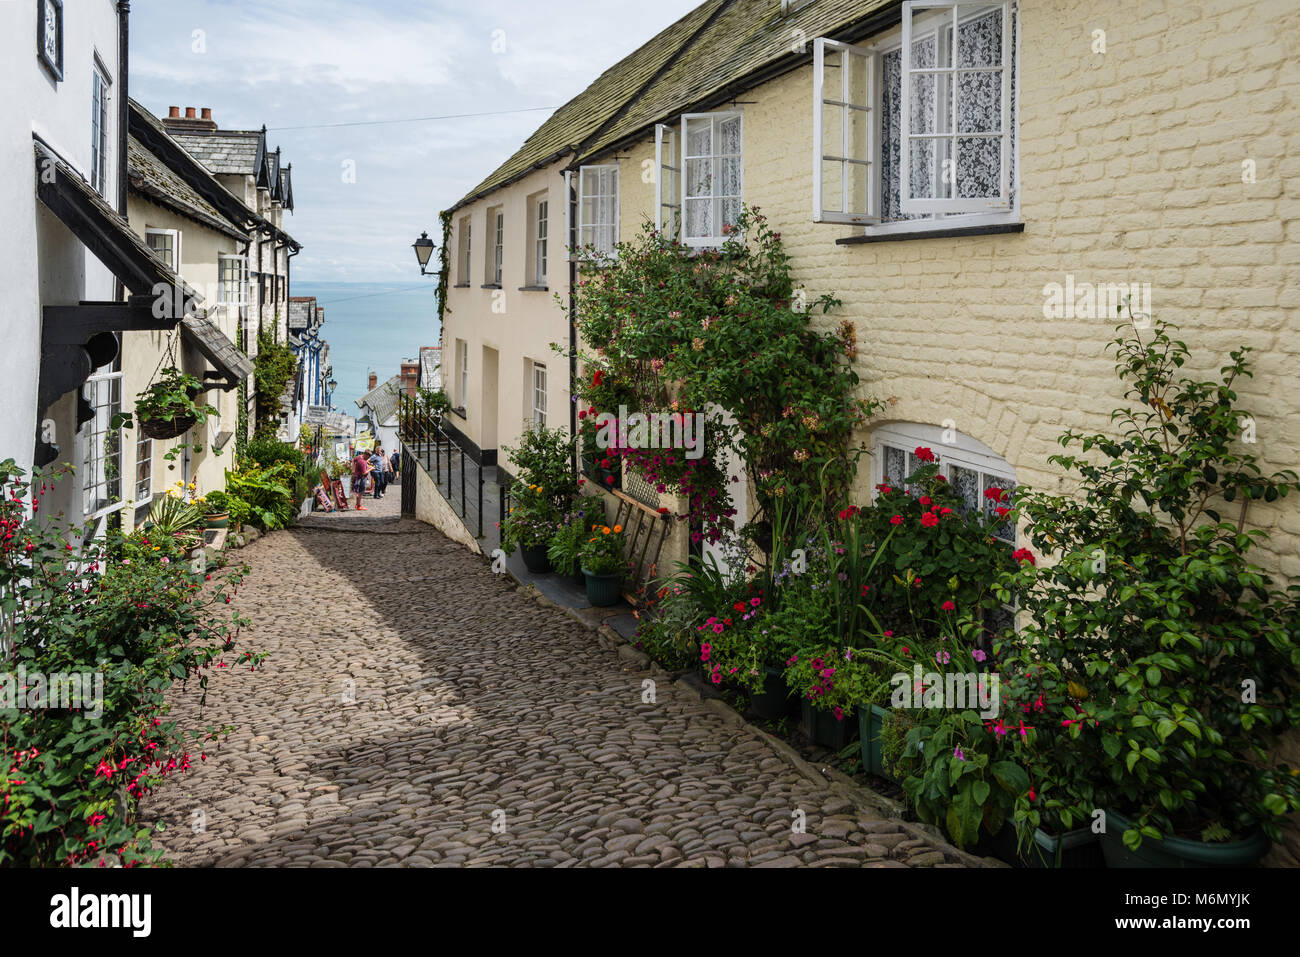 Clovelly and its steep narrow cobbled street North Devon UK - Stock Image